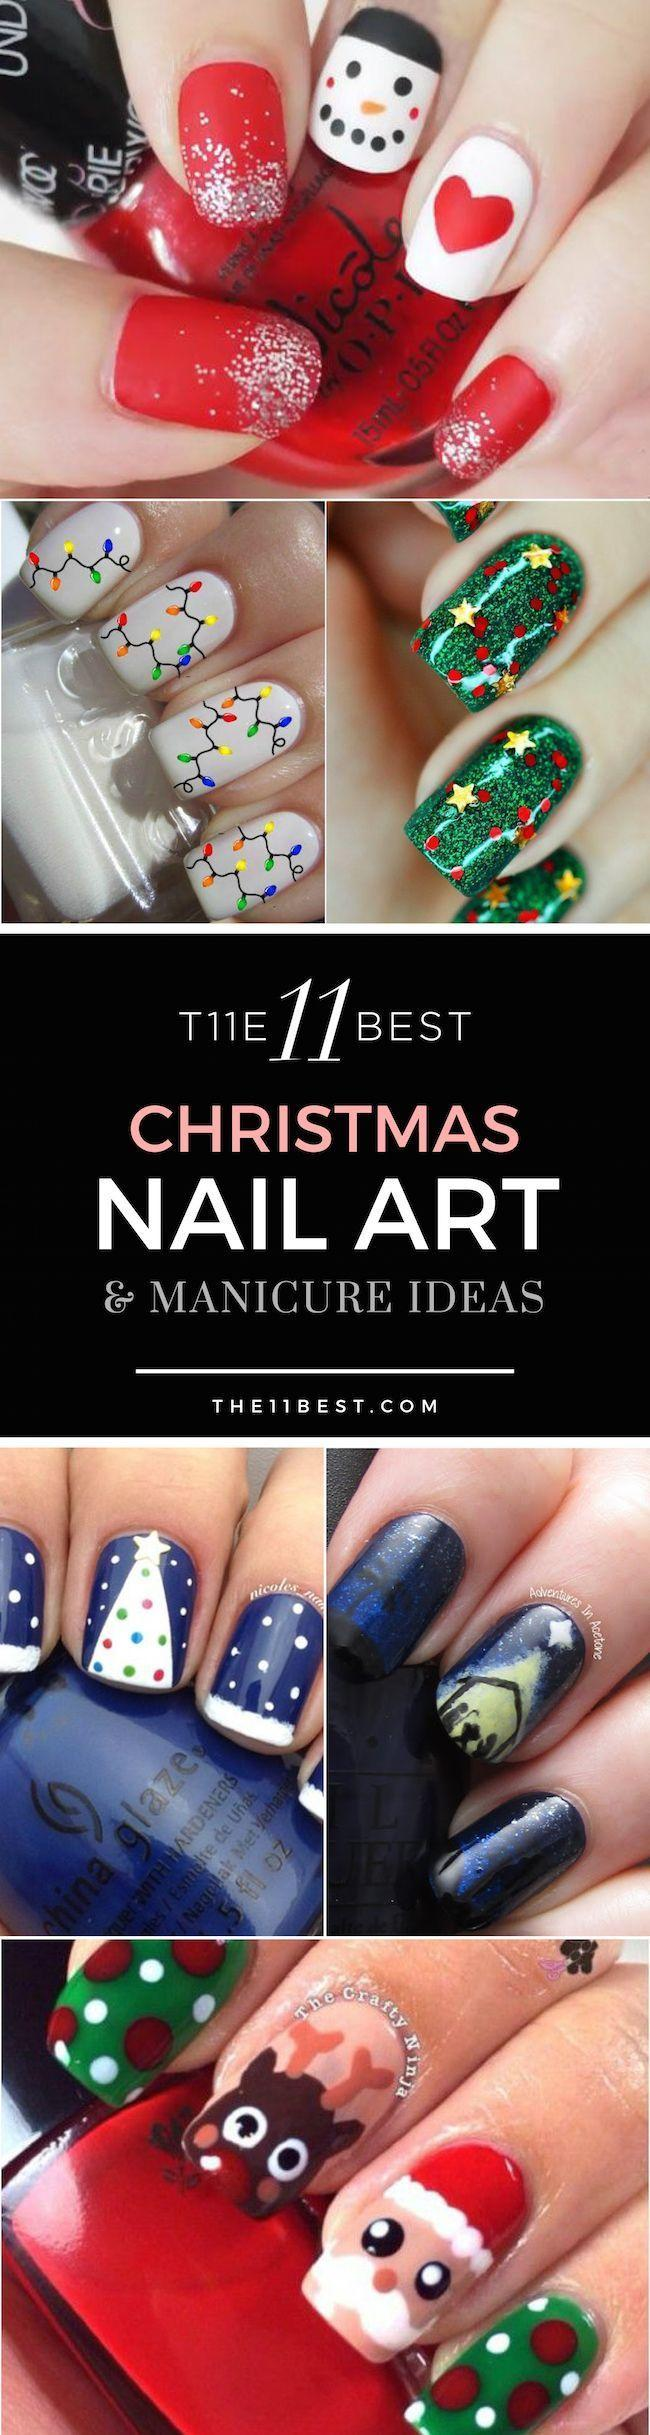 Mariage - The 11 Best Christmas Nail Art Ideas